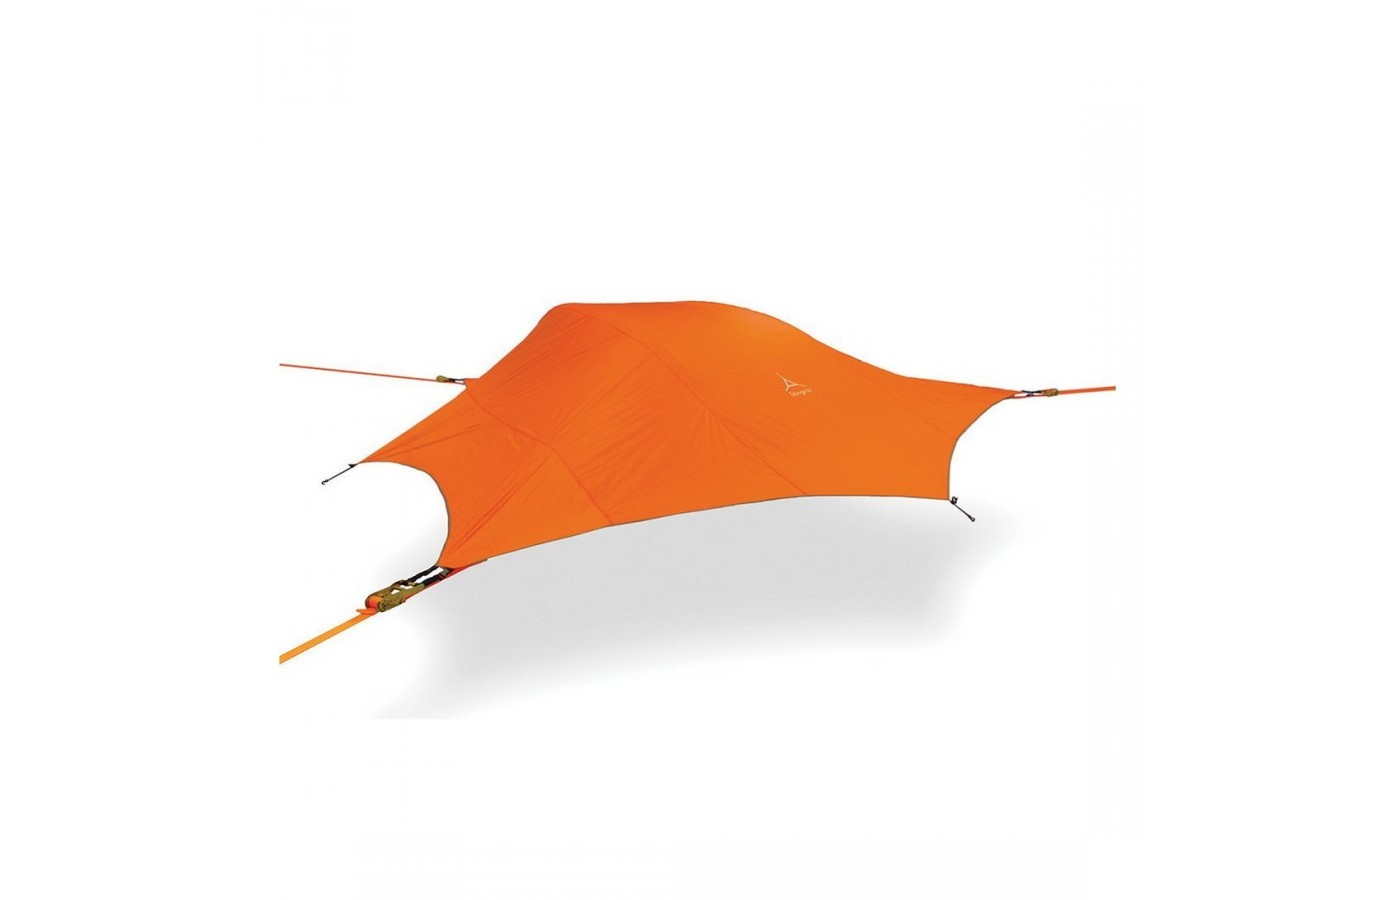 The Tentsile Stingray offers a full cover for protection from the rain.